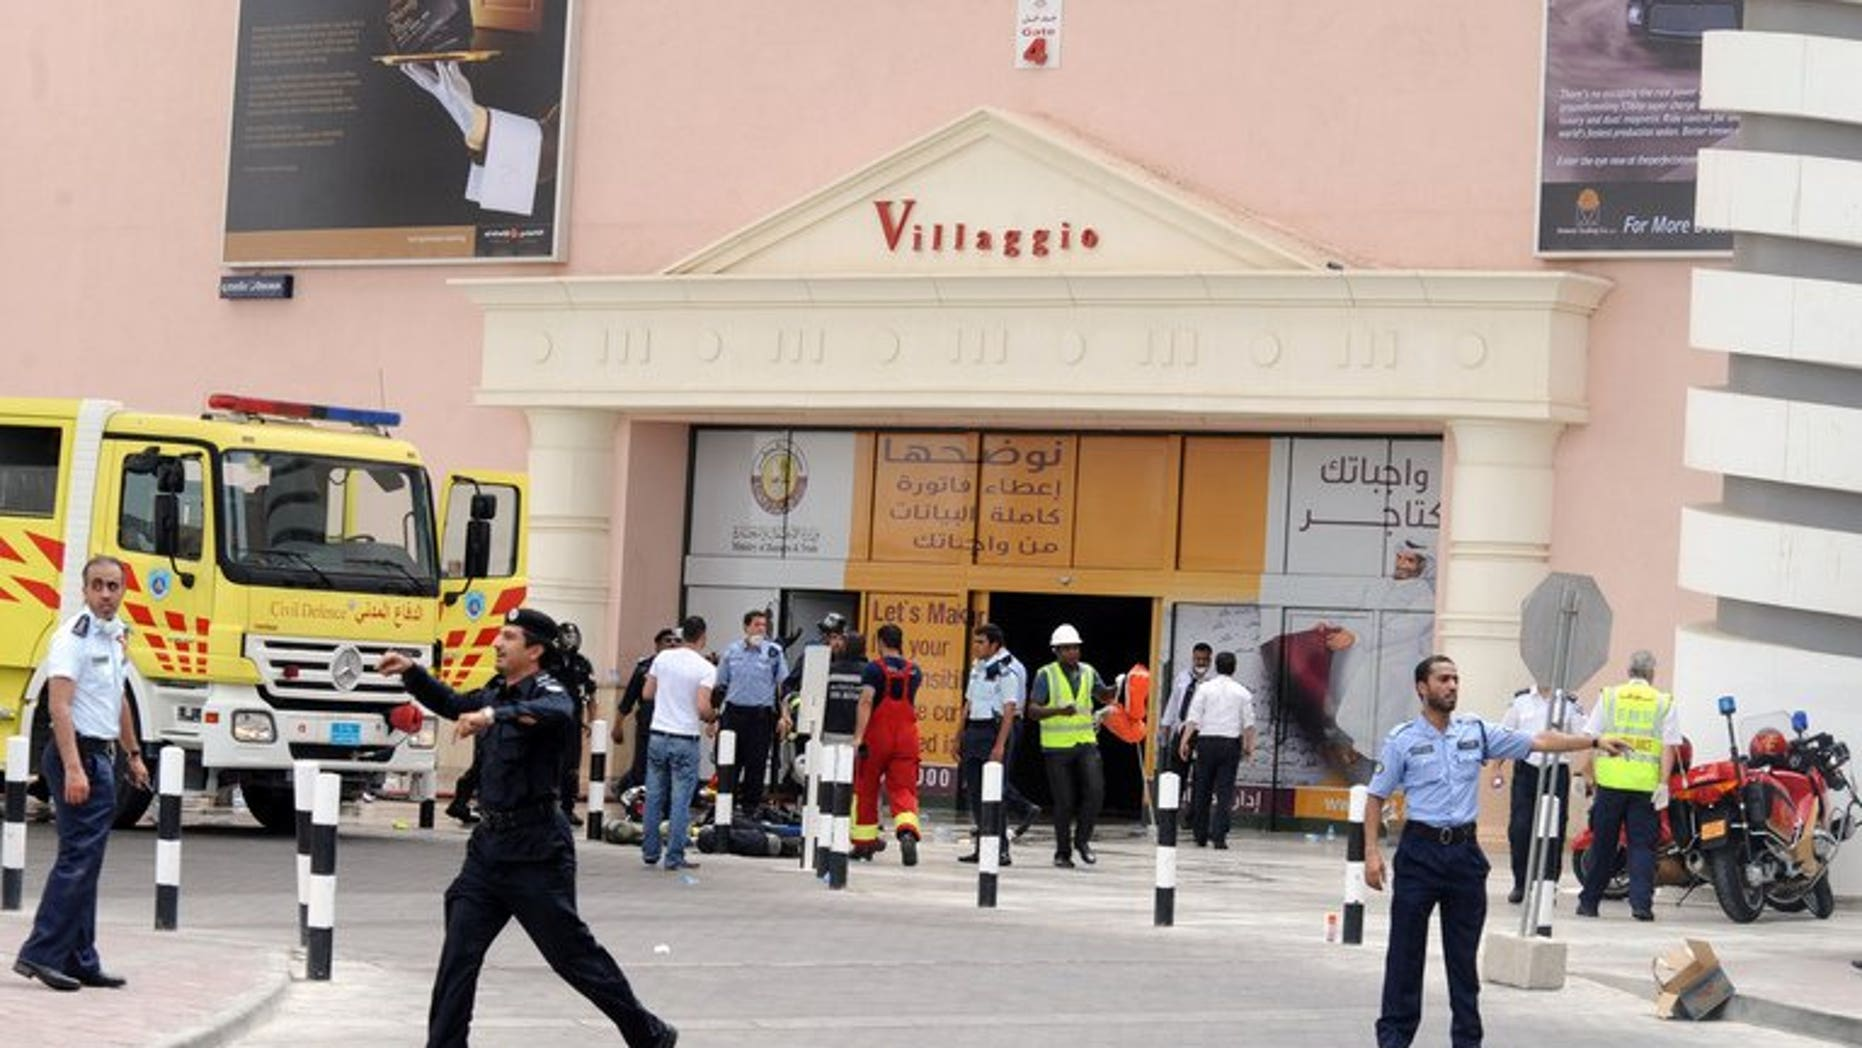 Qatari police clear traffic outside Doha's Villagio Mall after a fire broke out on May 28, 2012, killing at least 19 people, including 13 children. The parents of New Zealand triplets who died in the shopping mall fire, announced on Thursday that they have had baby twins.